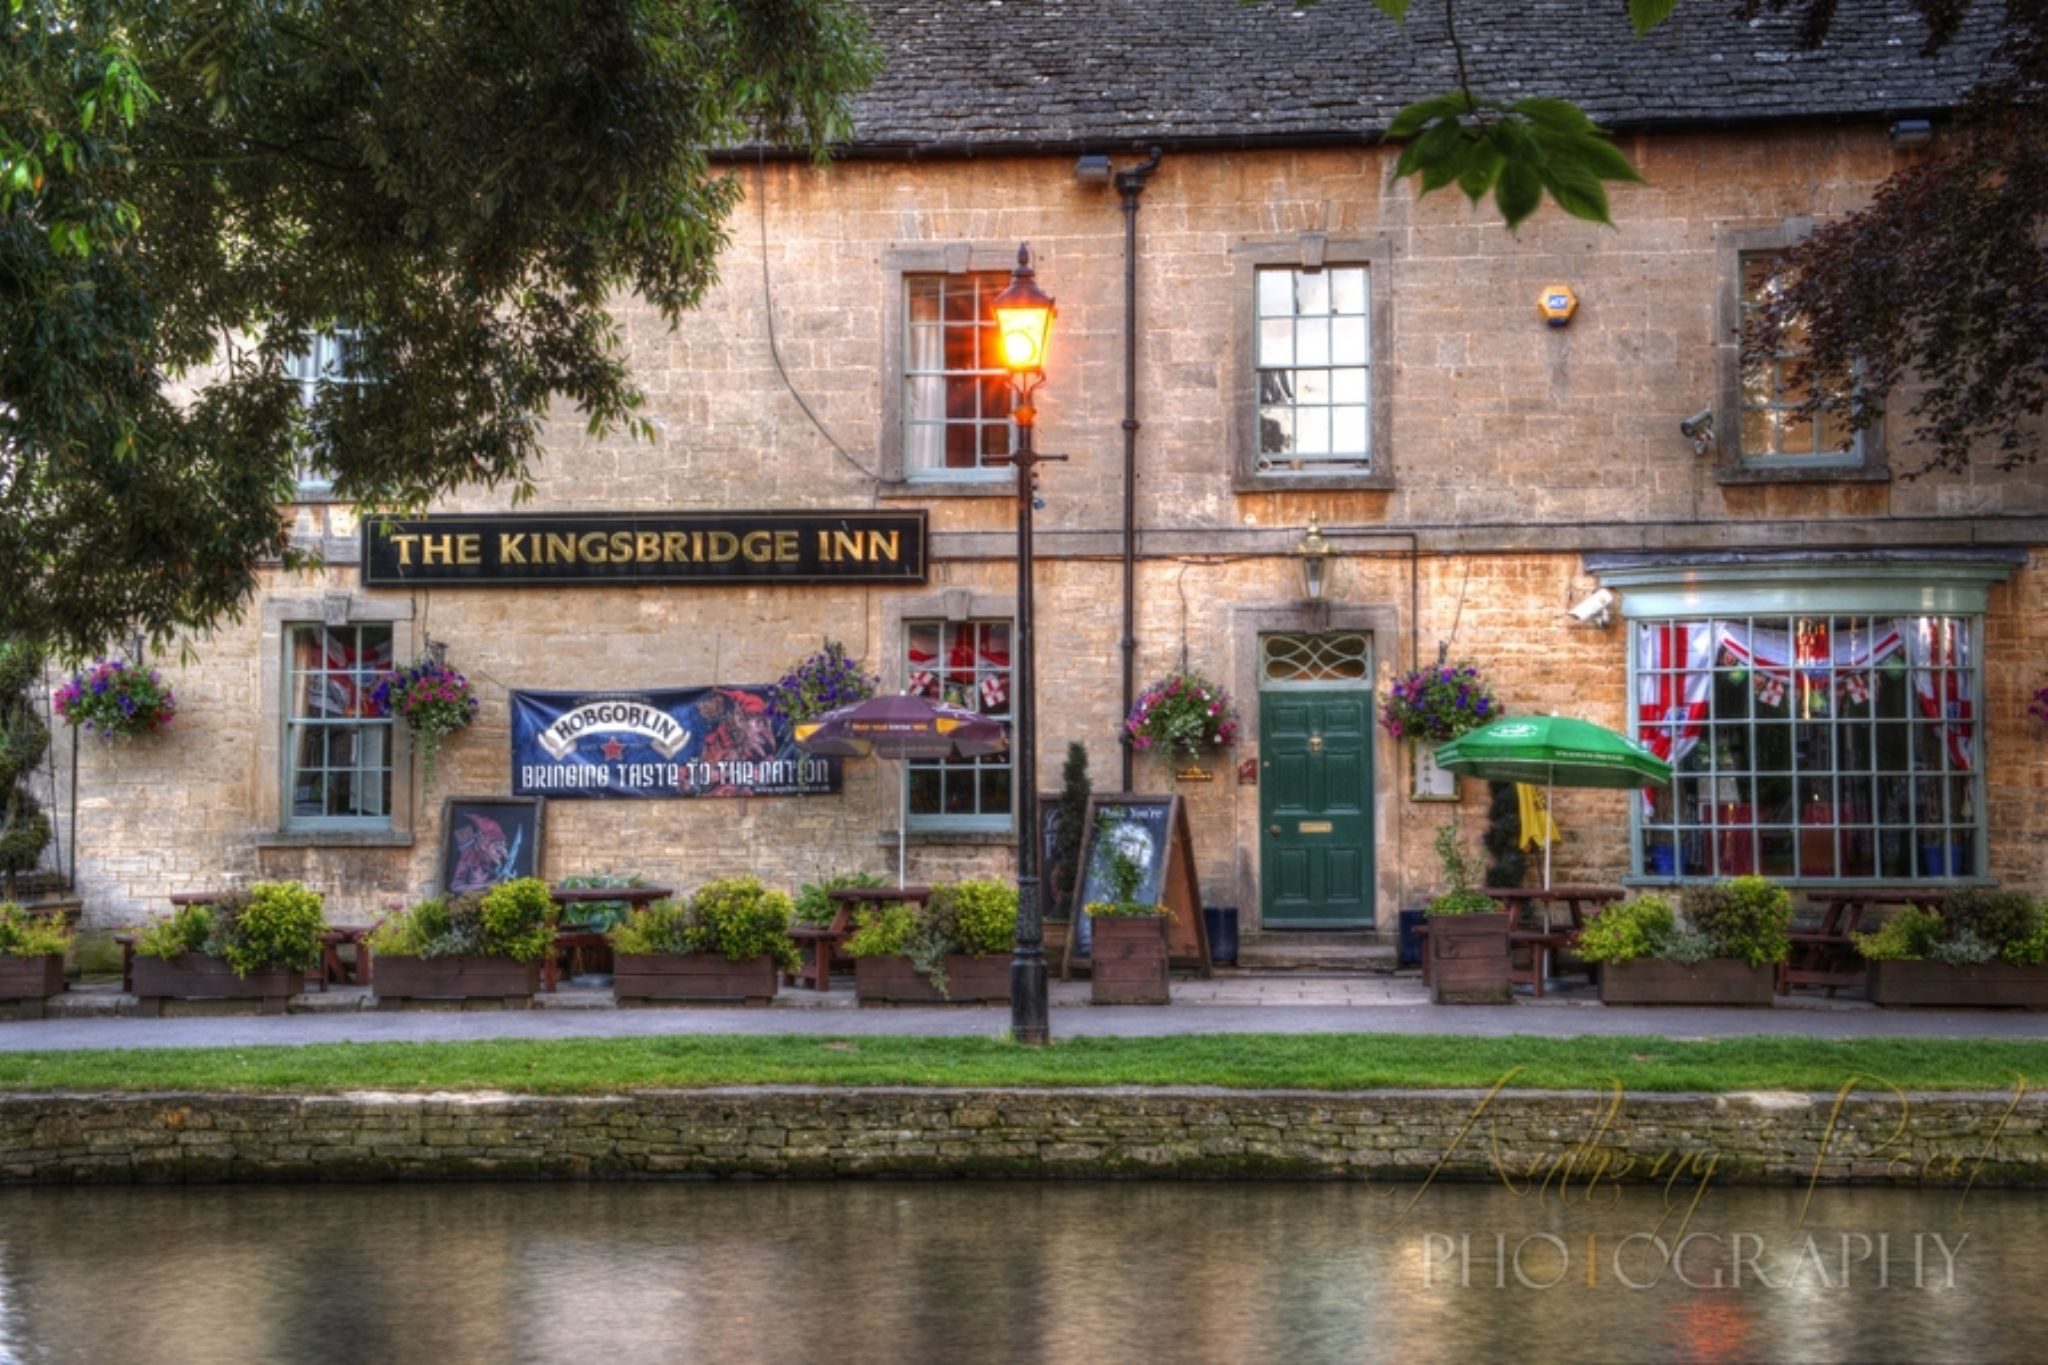 Bourton on the Water 210614-41_2_3 by Anthony Inwood